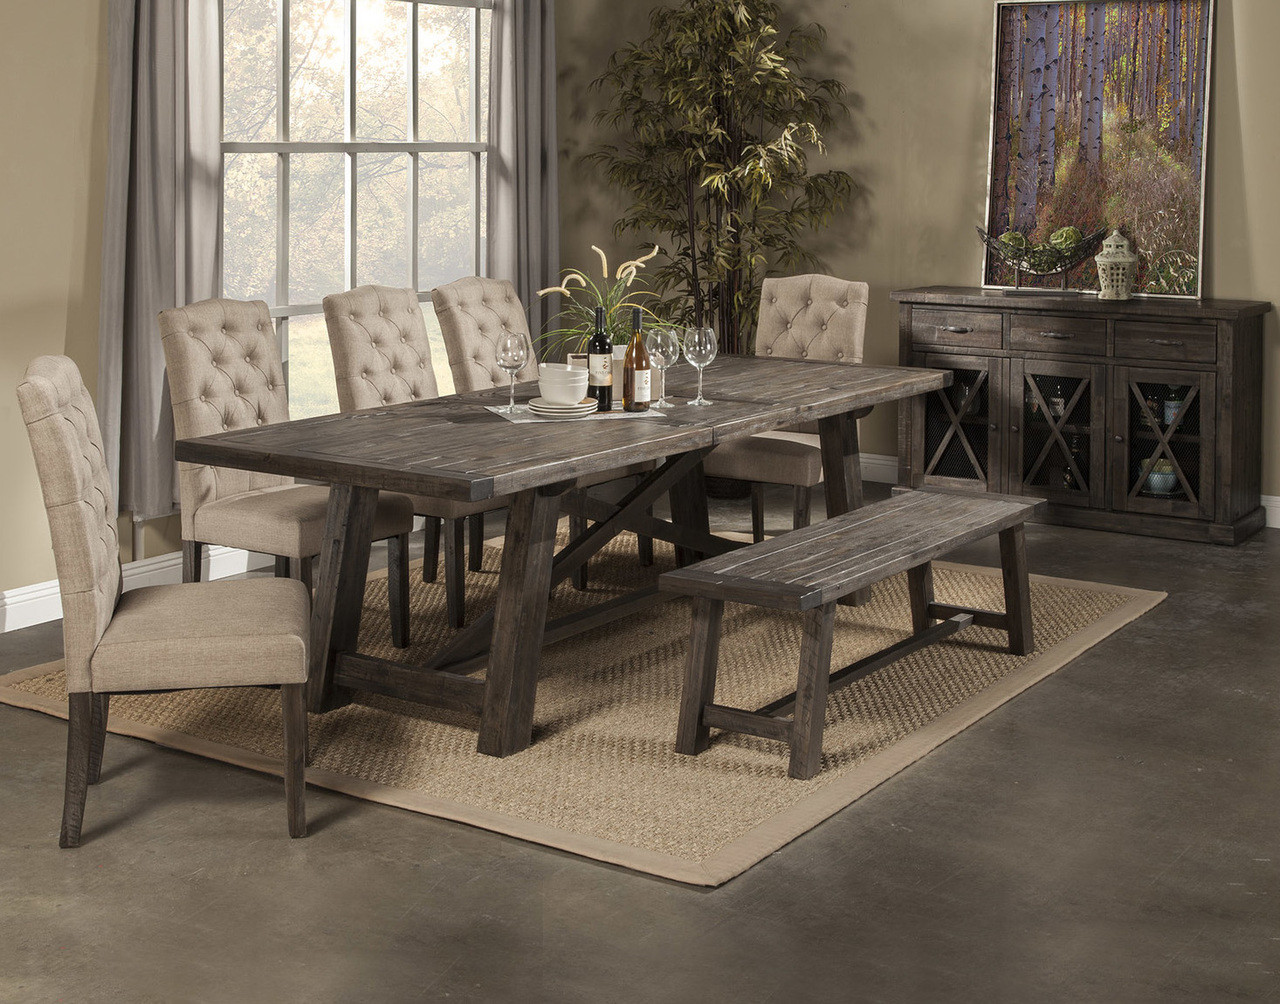 Dining Table With Bench And Chairs Newberry Dining Table With 4 Chairs And Bench